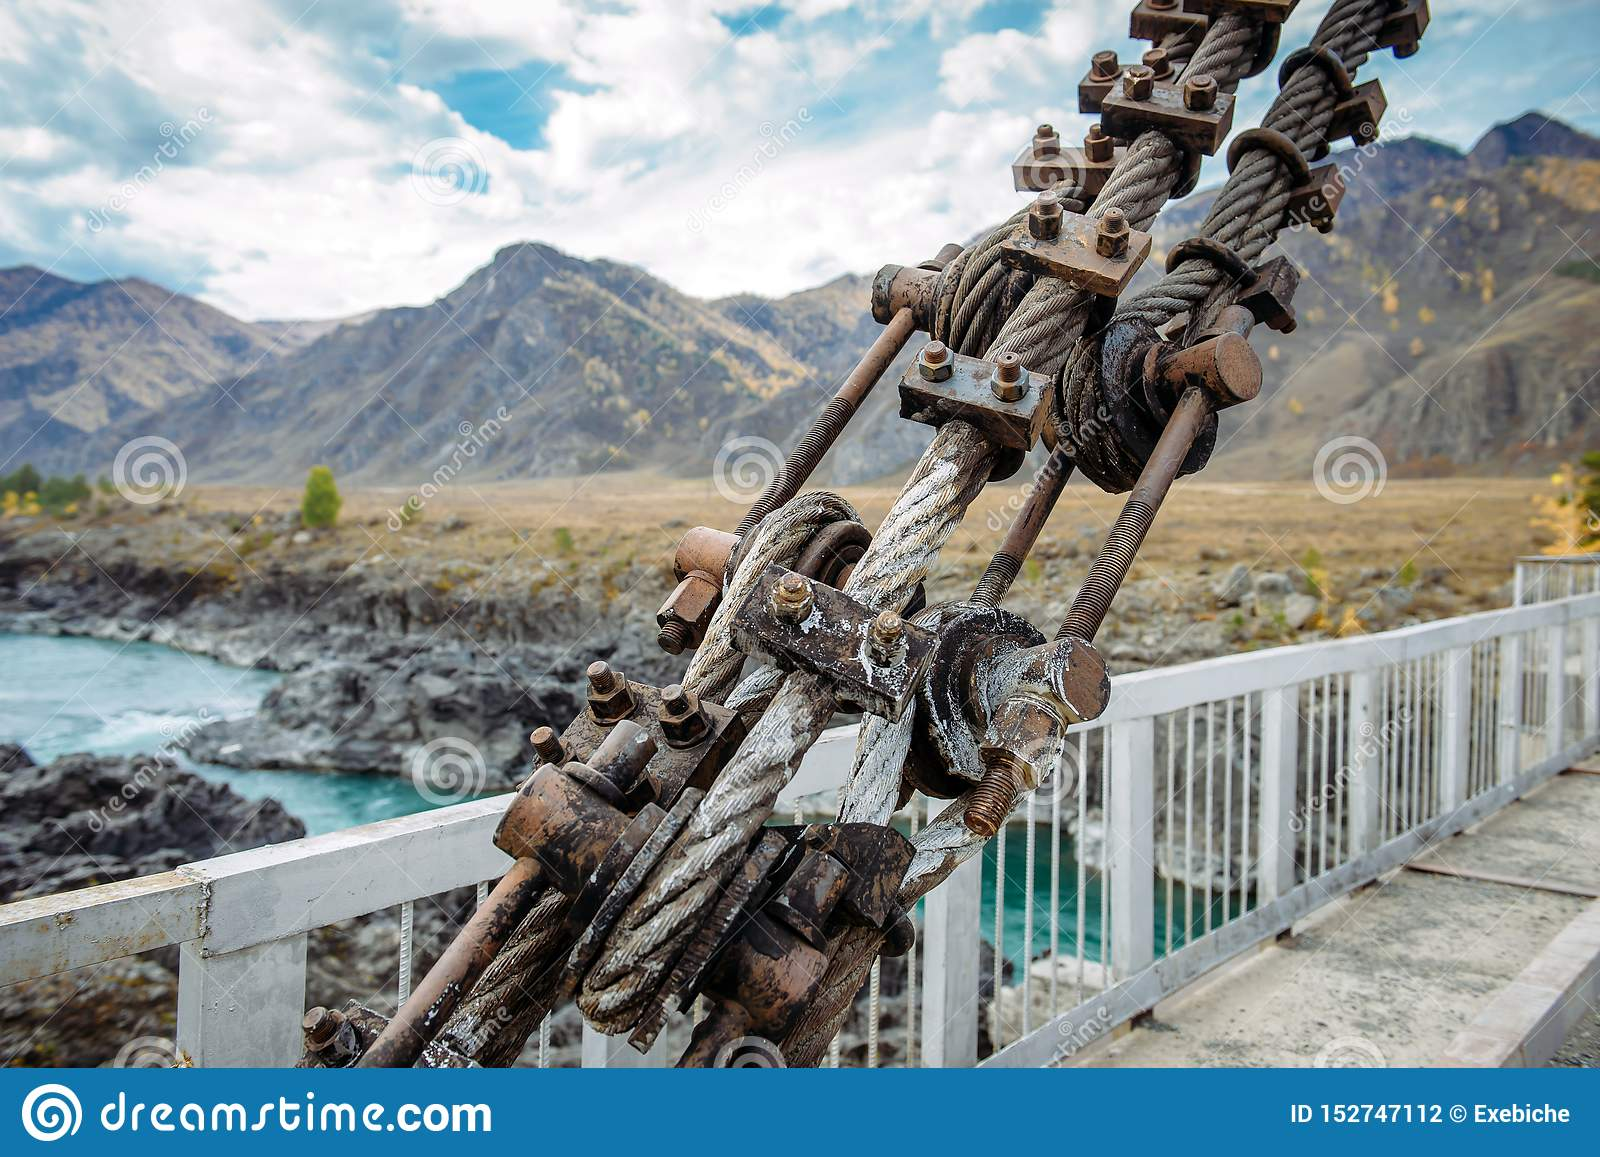 Road bridge over the river in the mountains, metal structure close-up. Location Gorny Altai, Siberia, Russia